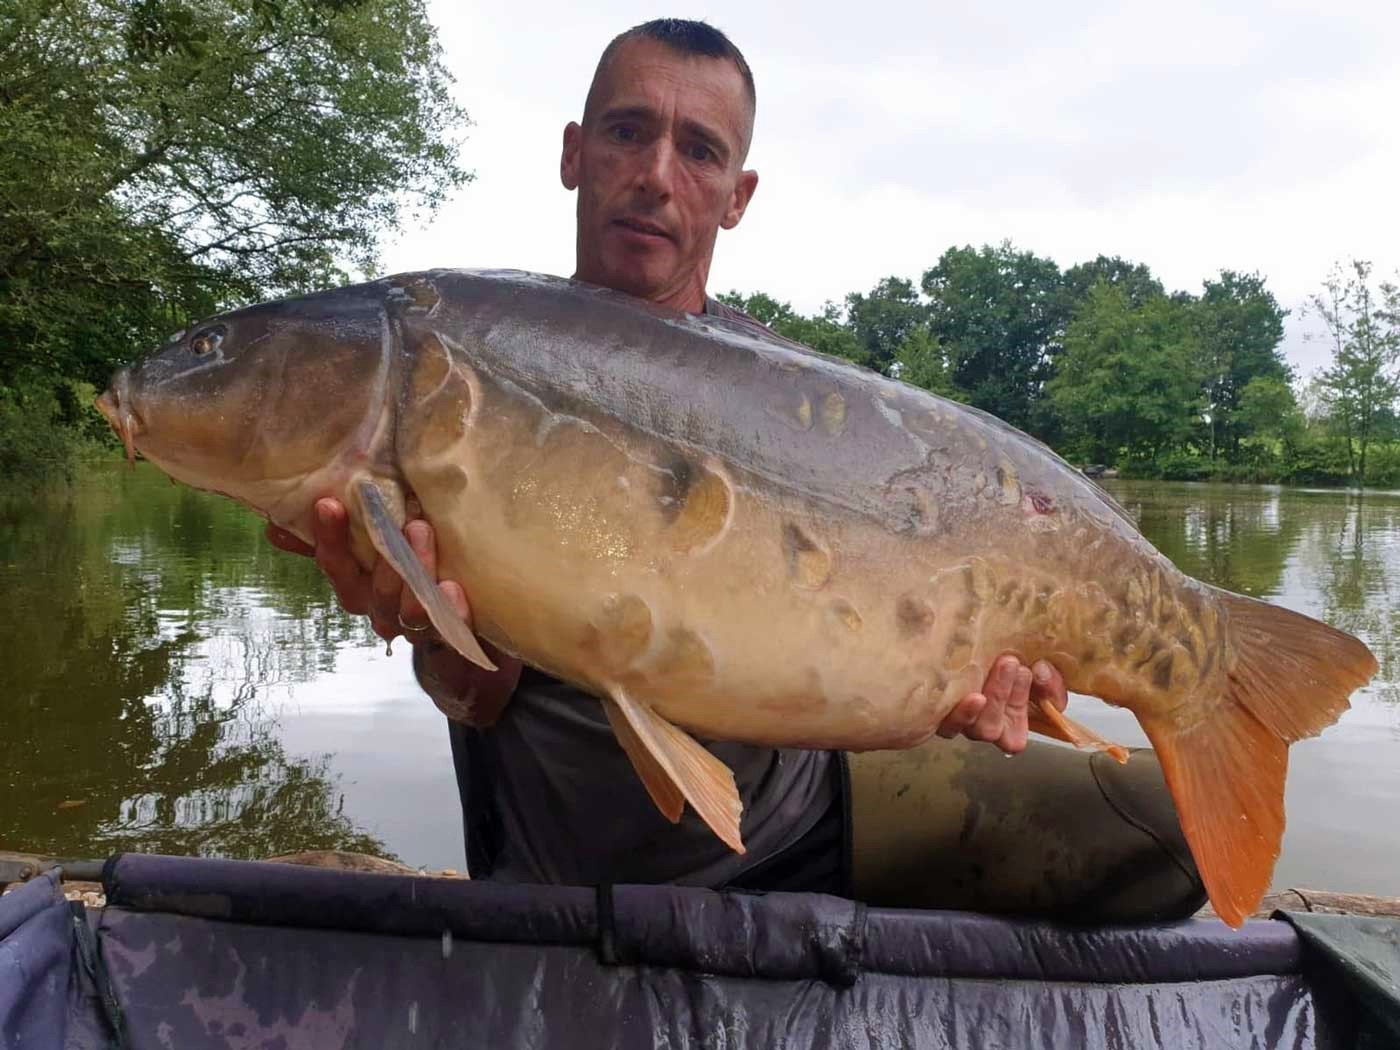 Lee with the Sub at 40lbs